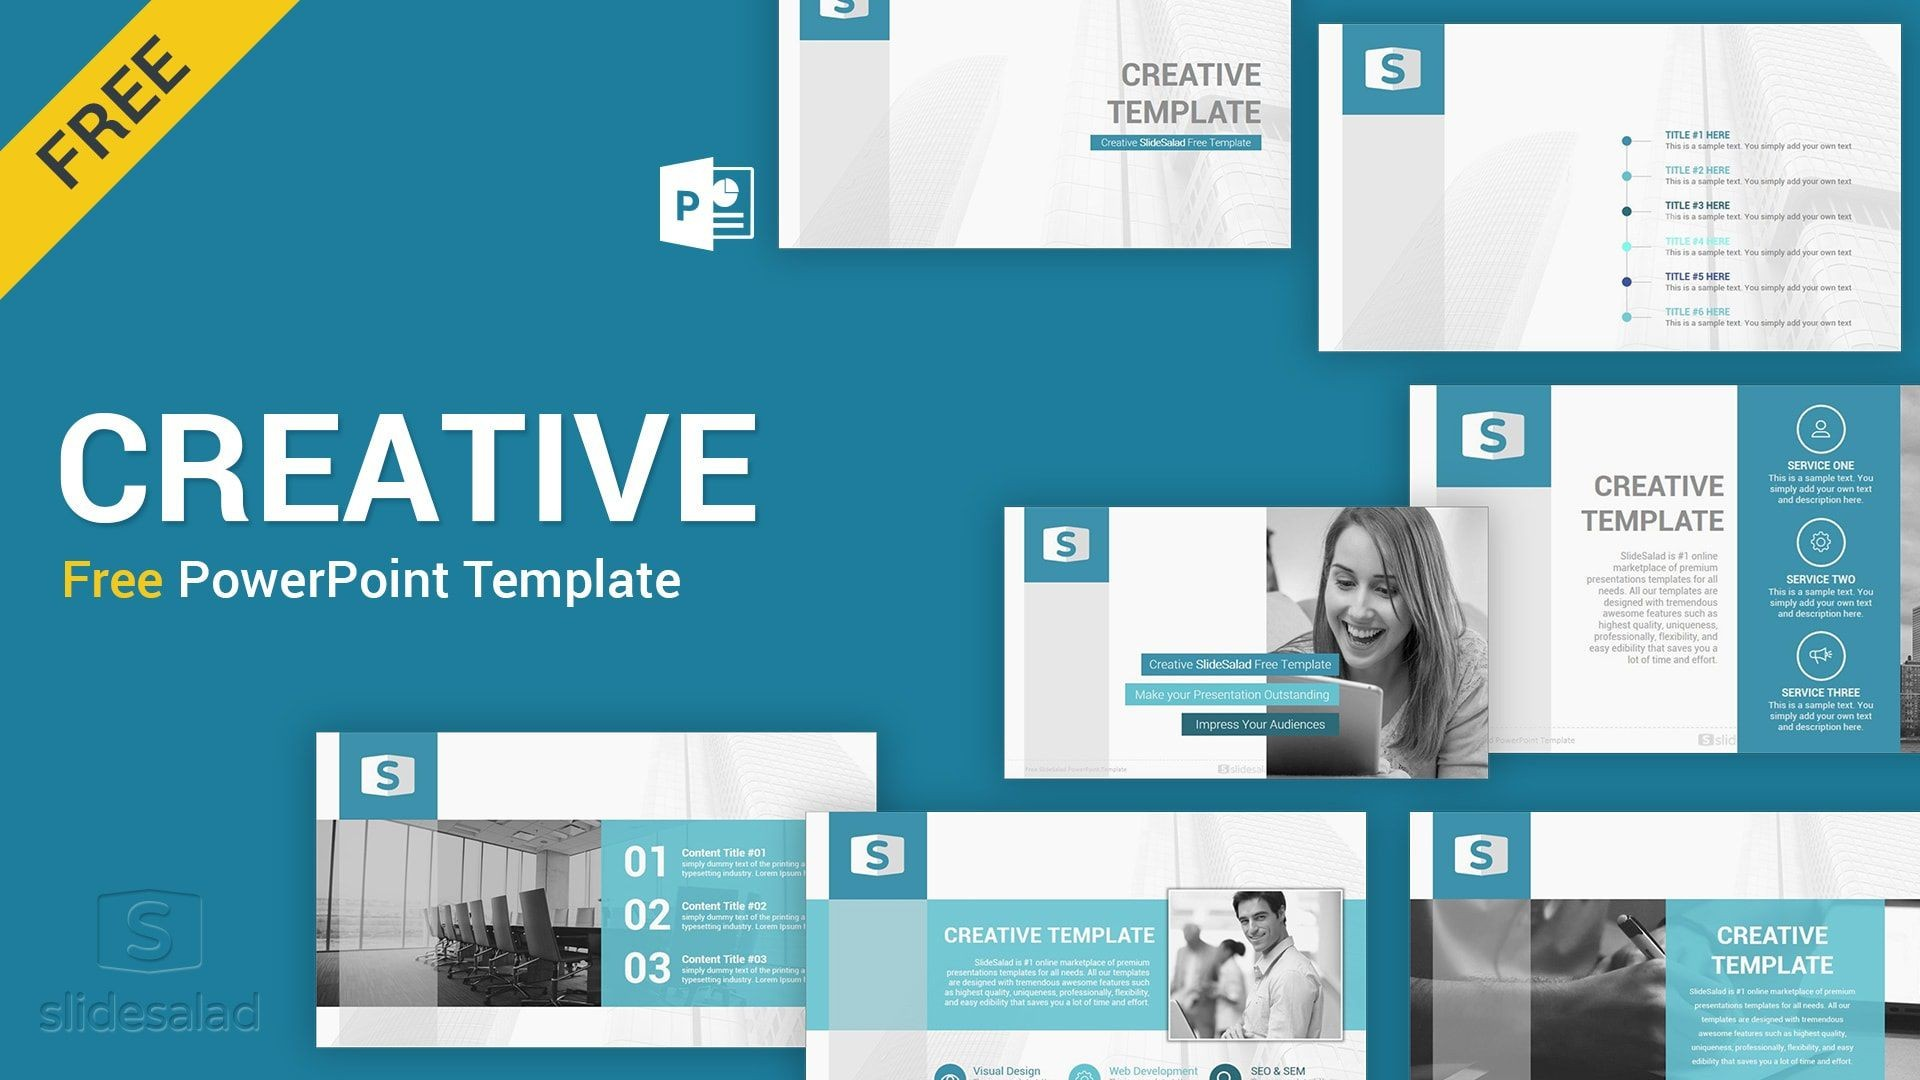 005 Best Free Downloadable Powerpoint Template Idea  Templates Download Animated Background Design Theme1920